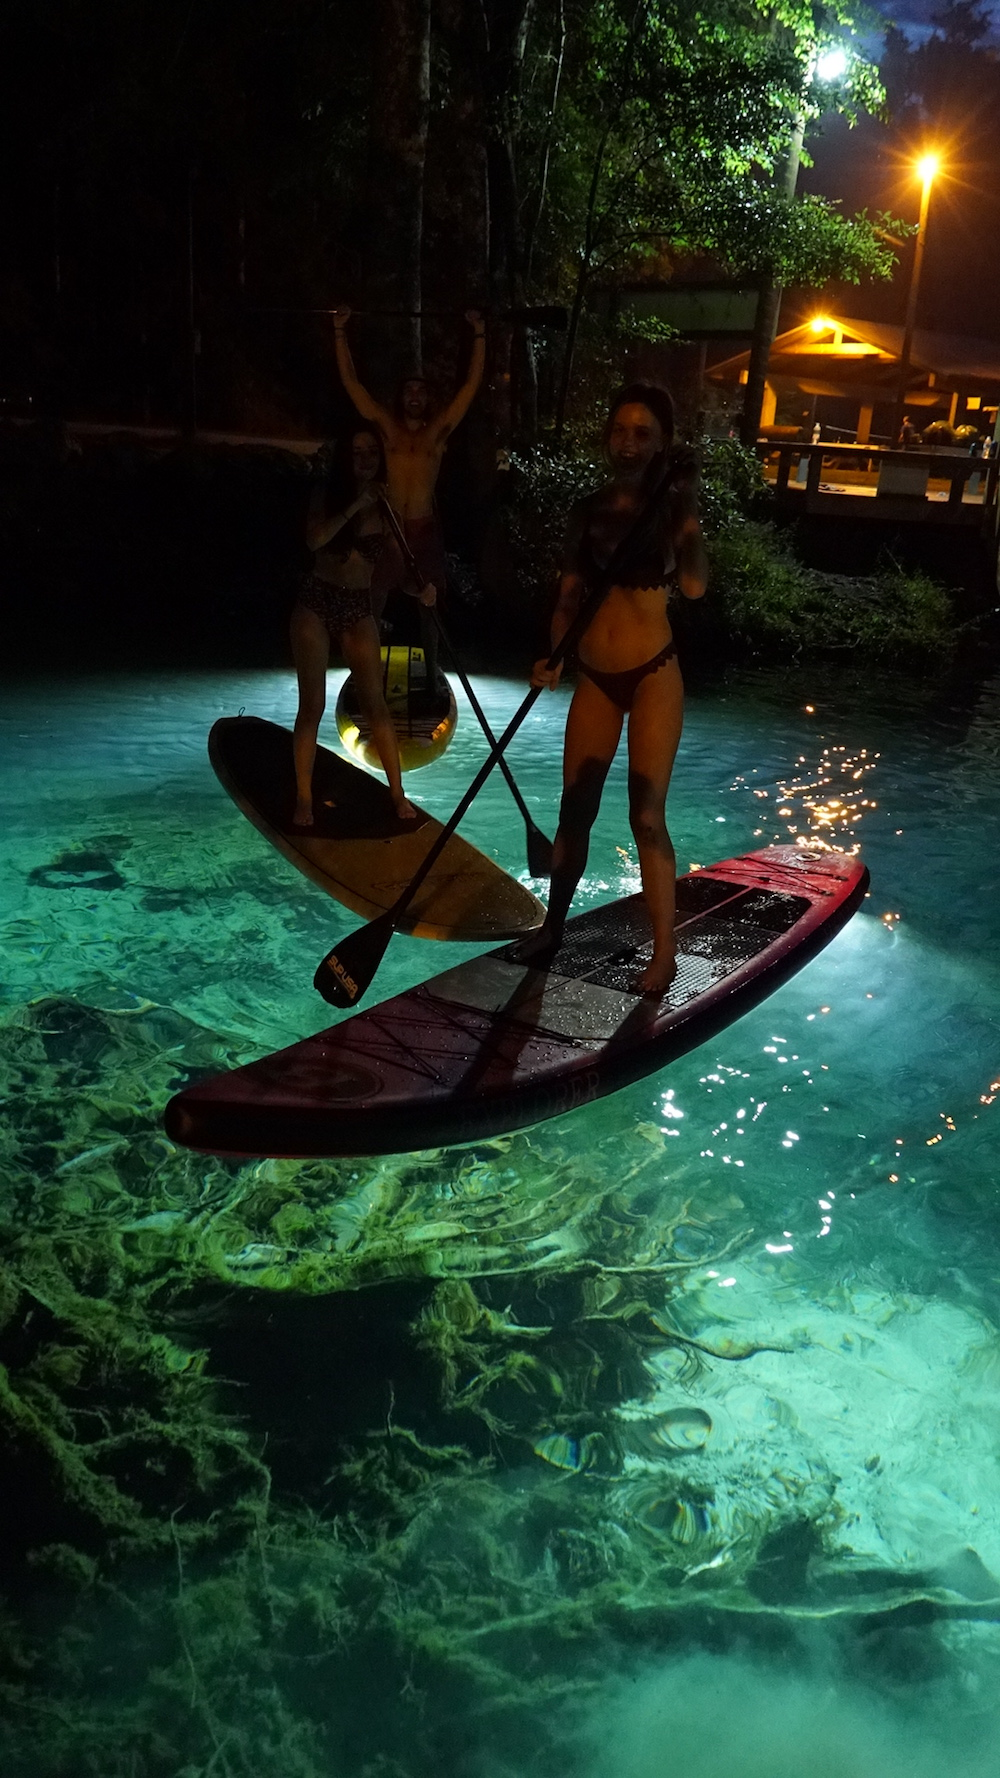 paddle boarding at night